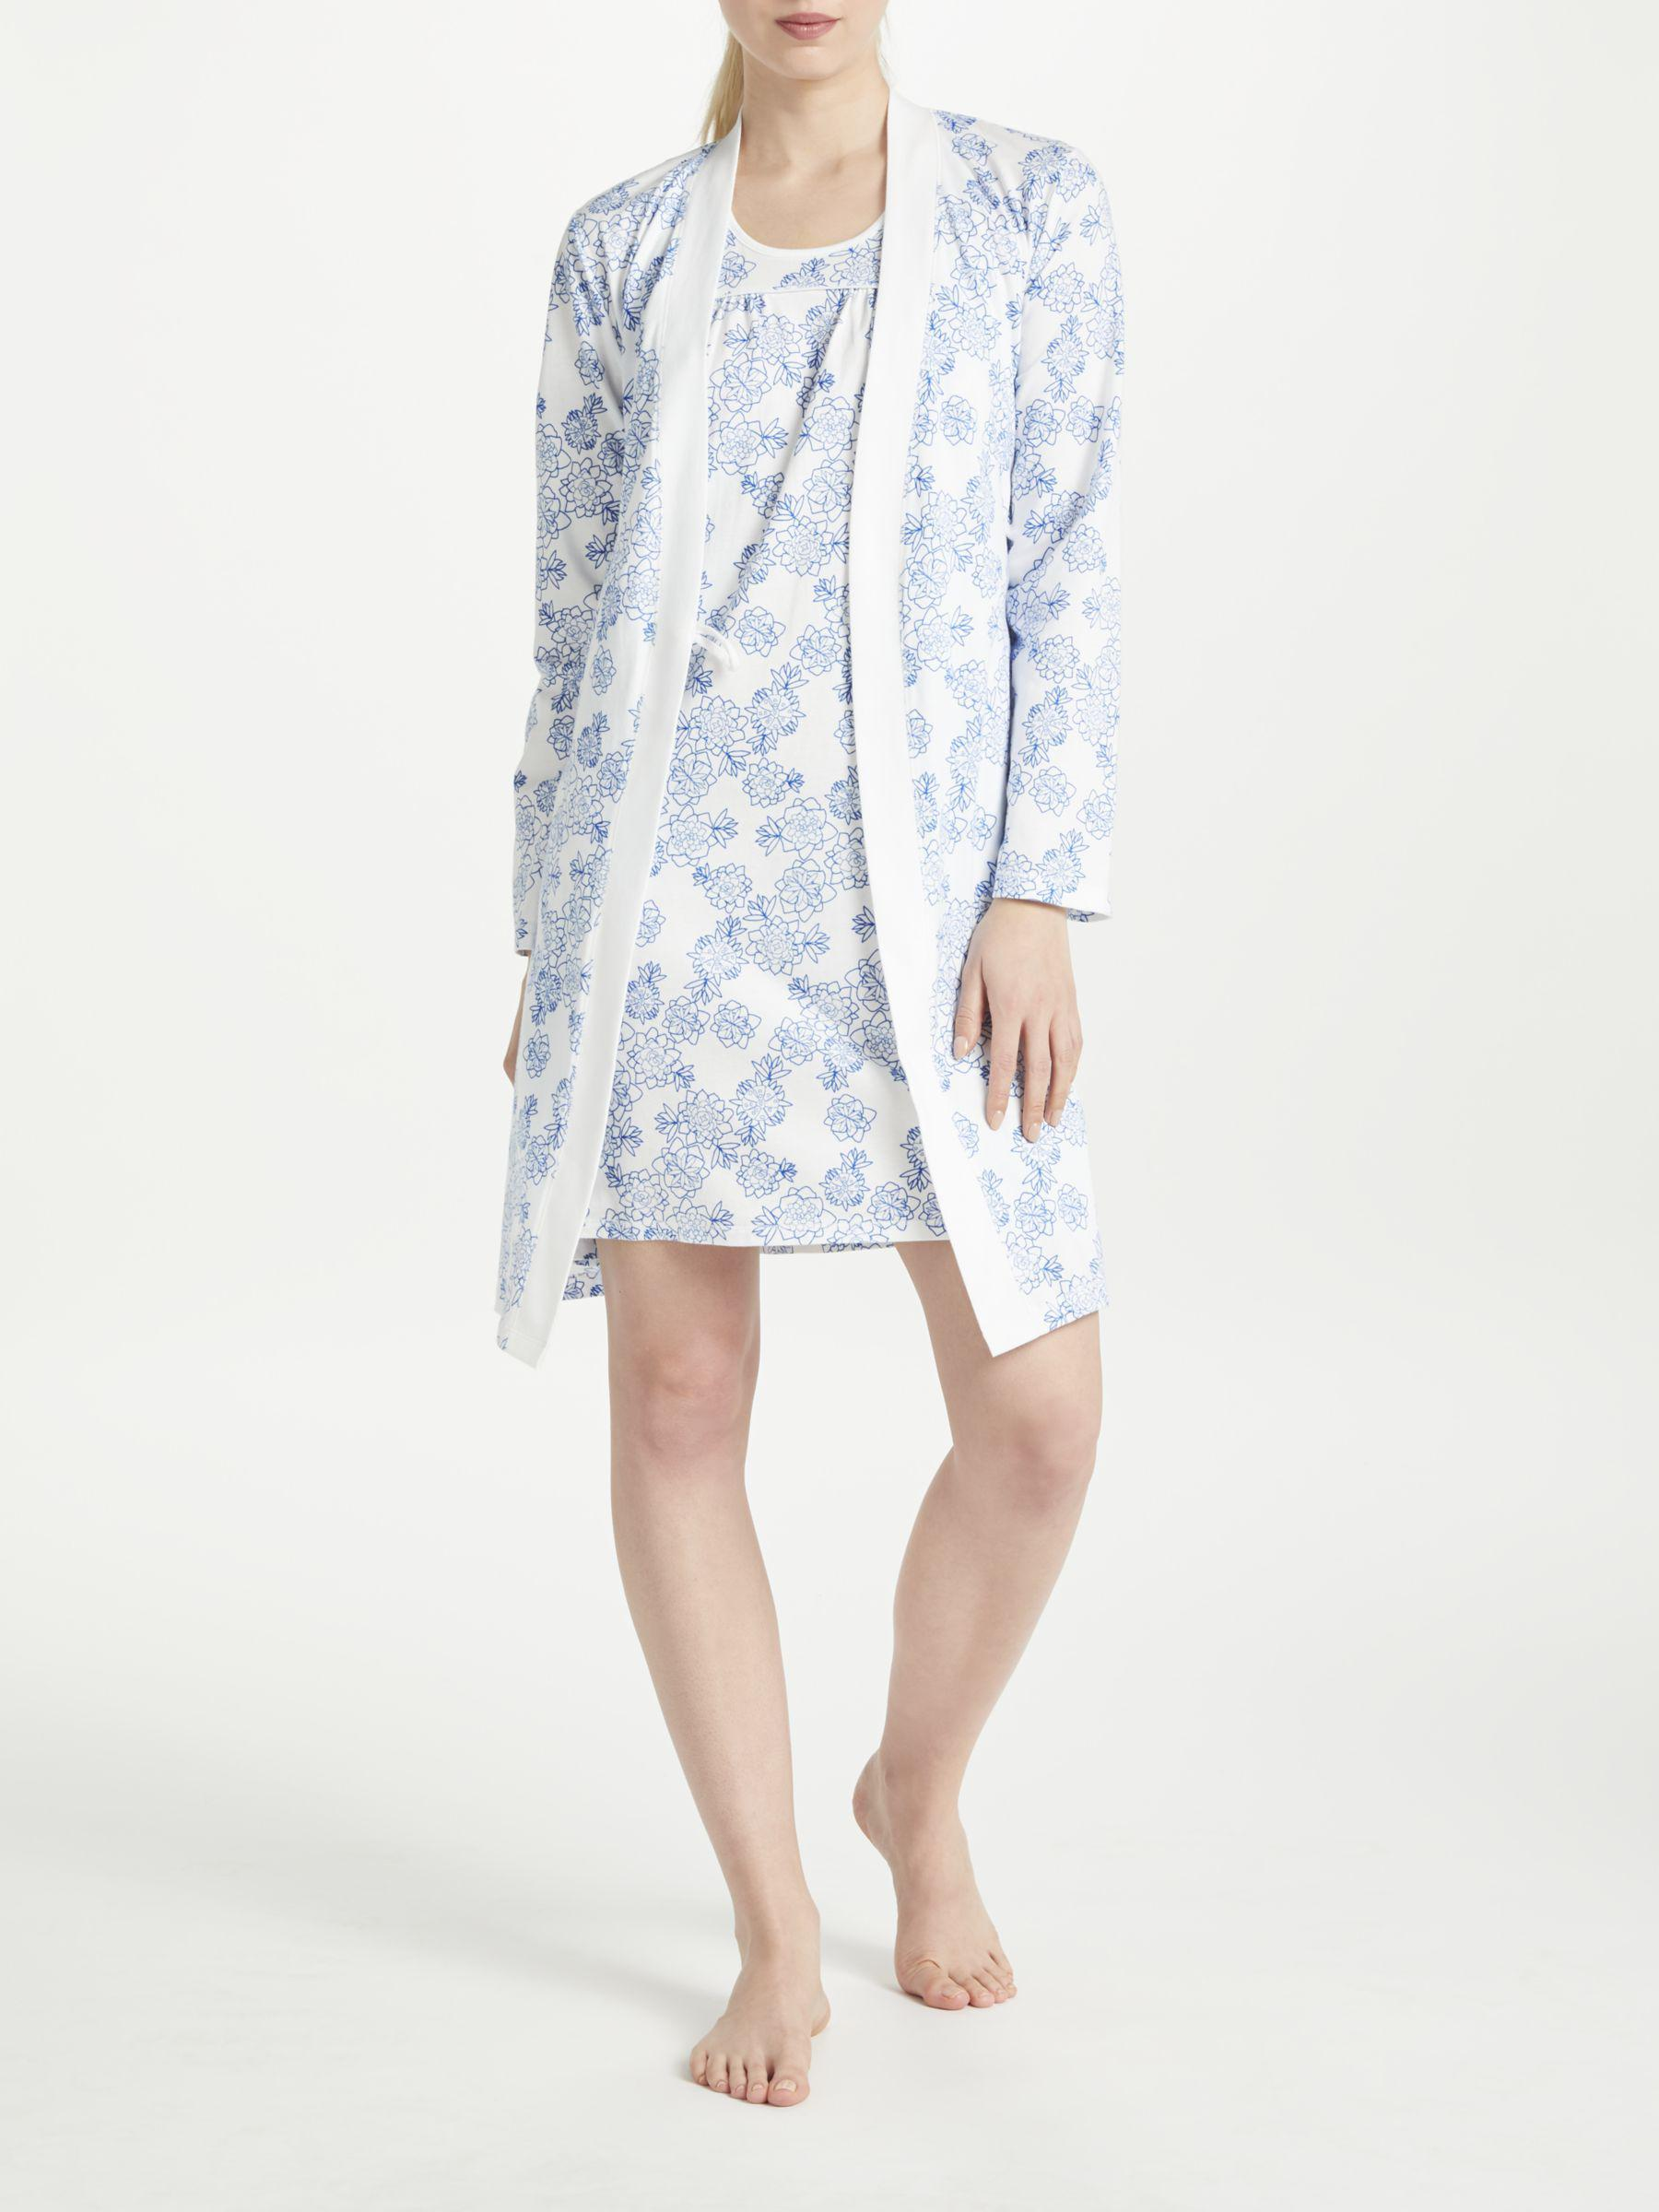 Magnificent White Stuff Dressing Gown Image Collection - Wedding and ...